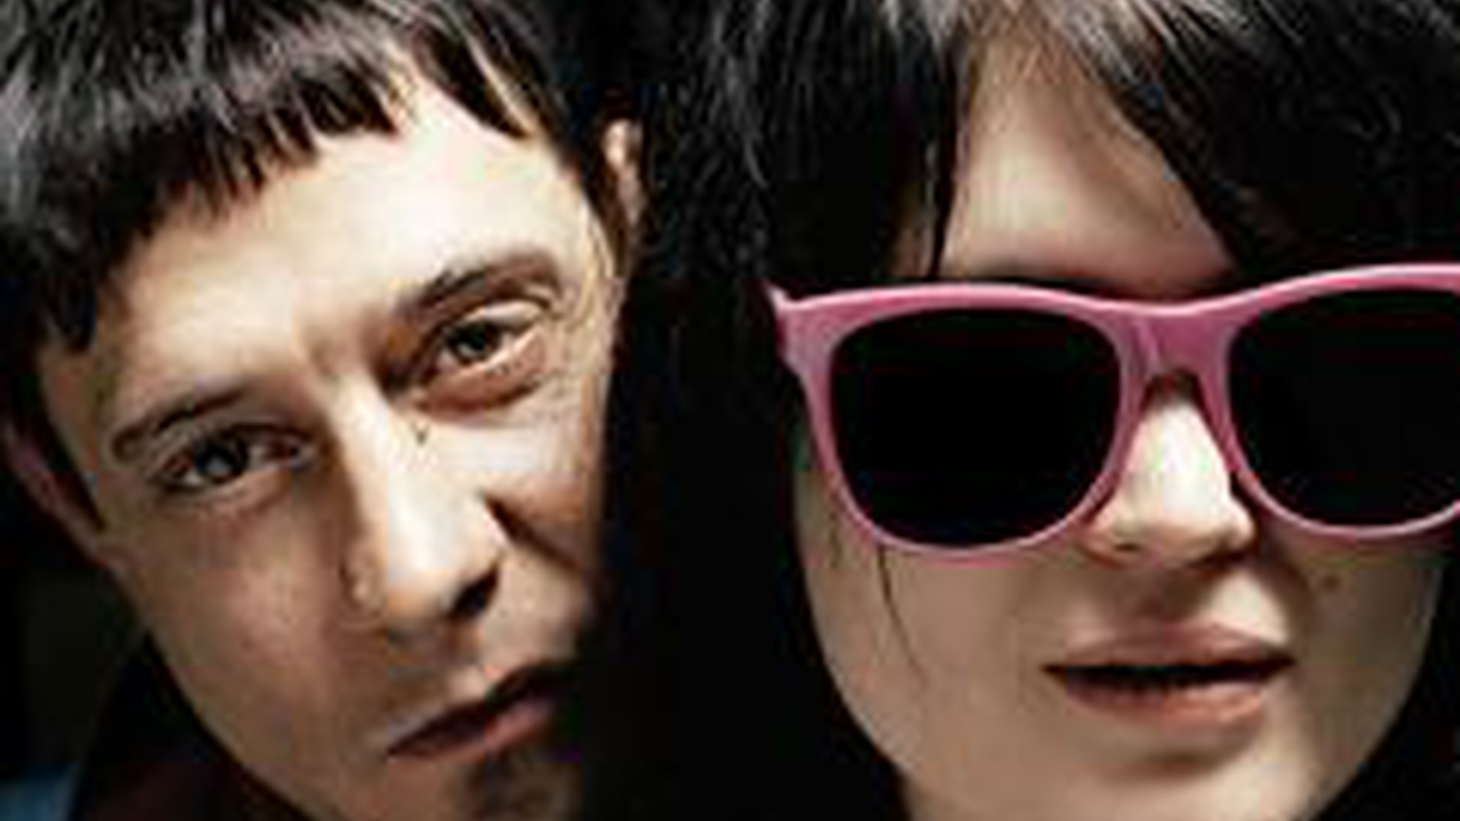 Florida's Alison Mosshart met London's Jamie Hince in 2000. After many postal and email music exchanges, she decided to make things easier and move to London, where The Kills formally began...